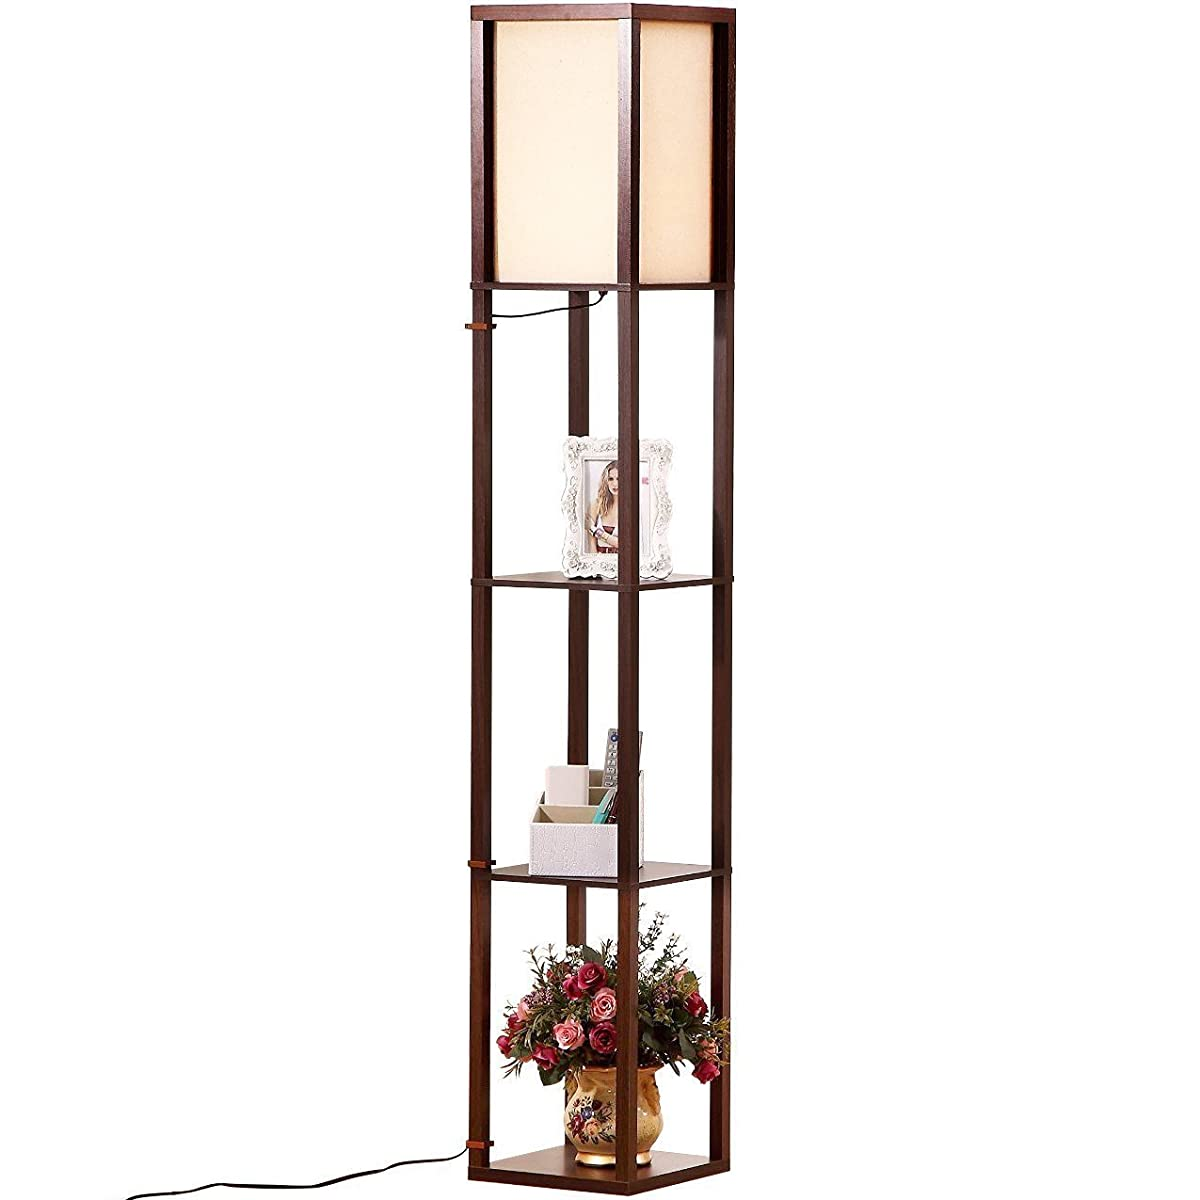 Brightech   Maxwell LED Shelf Floor Lamp U2013 Modern Asian Style Standing Lamp  With Soft Diffused Uplight White ...